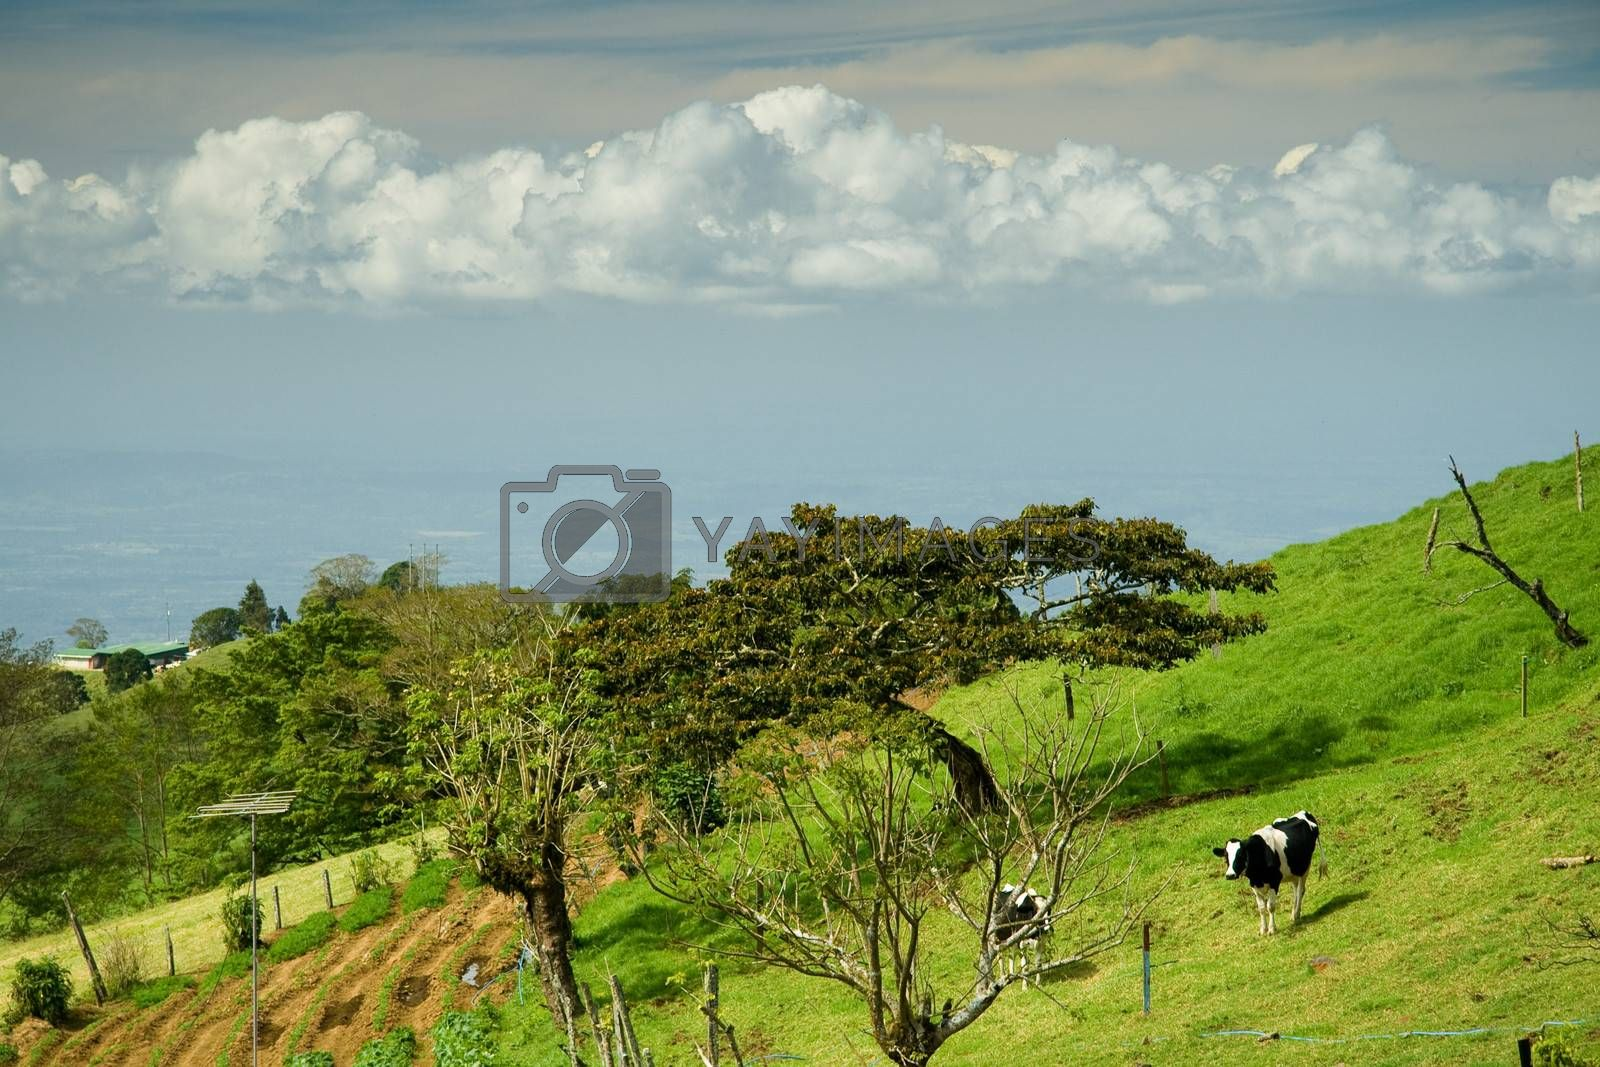 Cows grazing on green countryside field, Costa Rica.